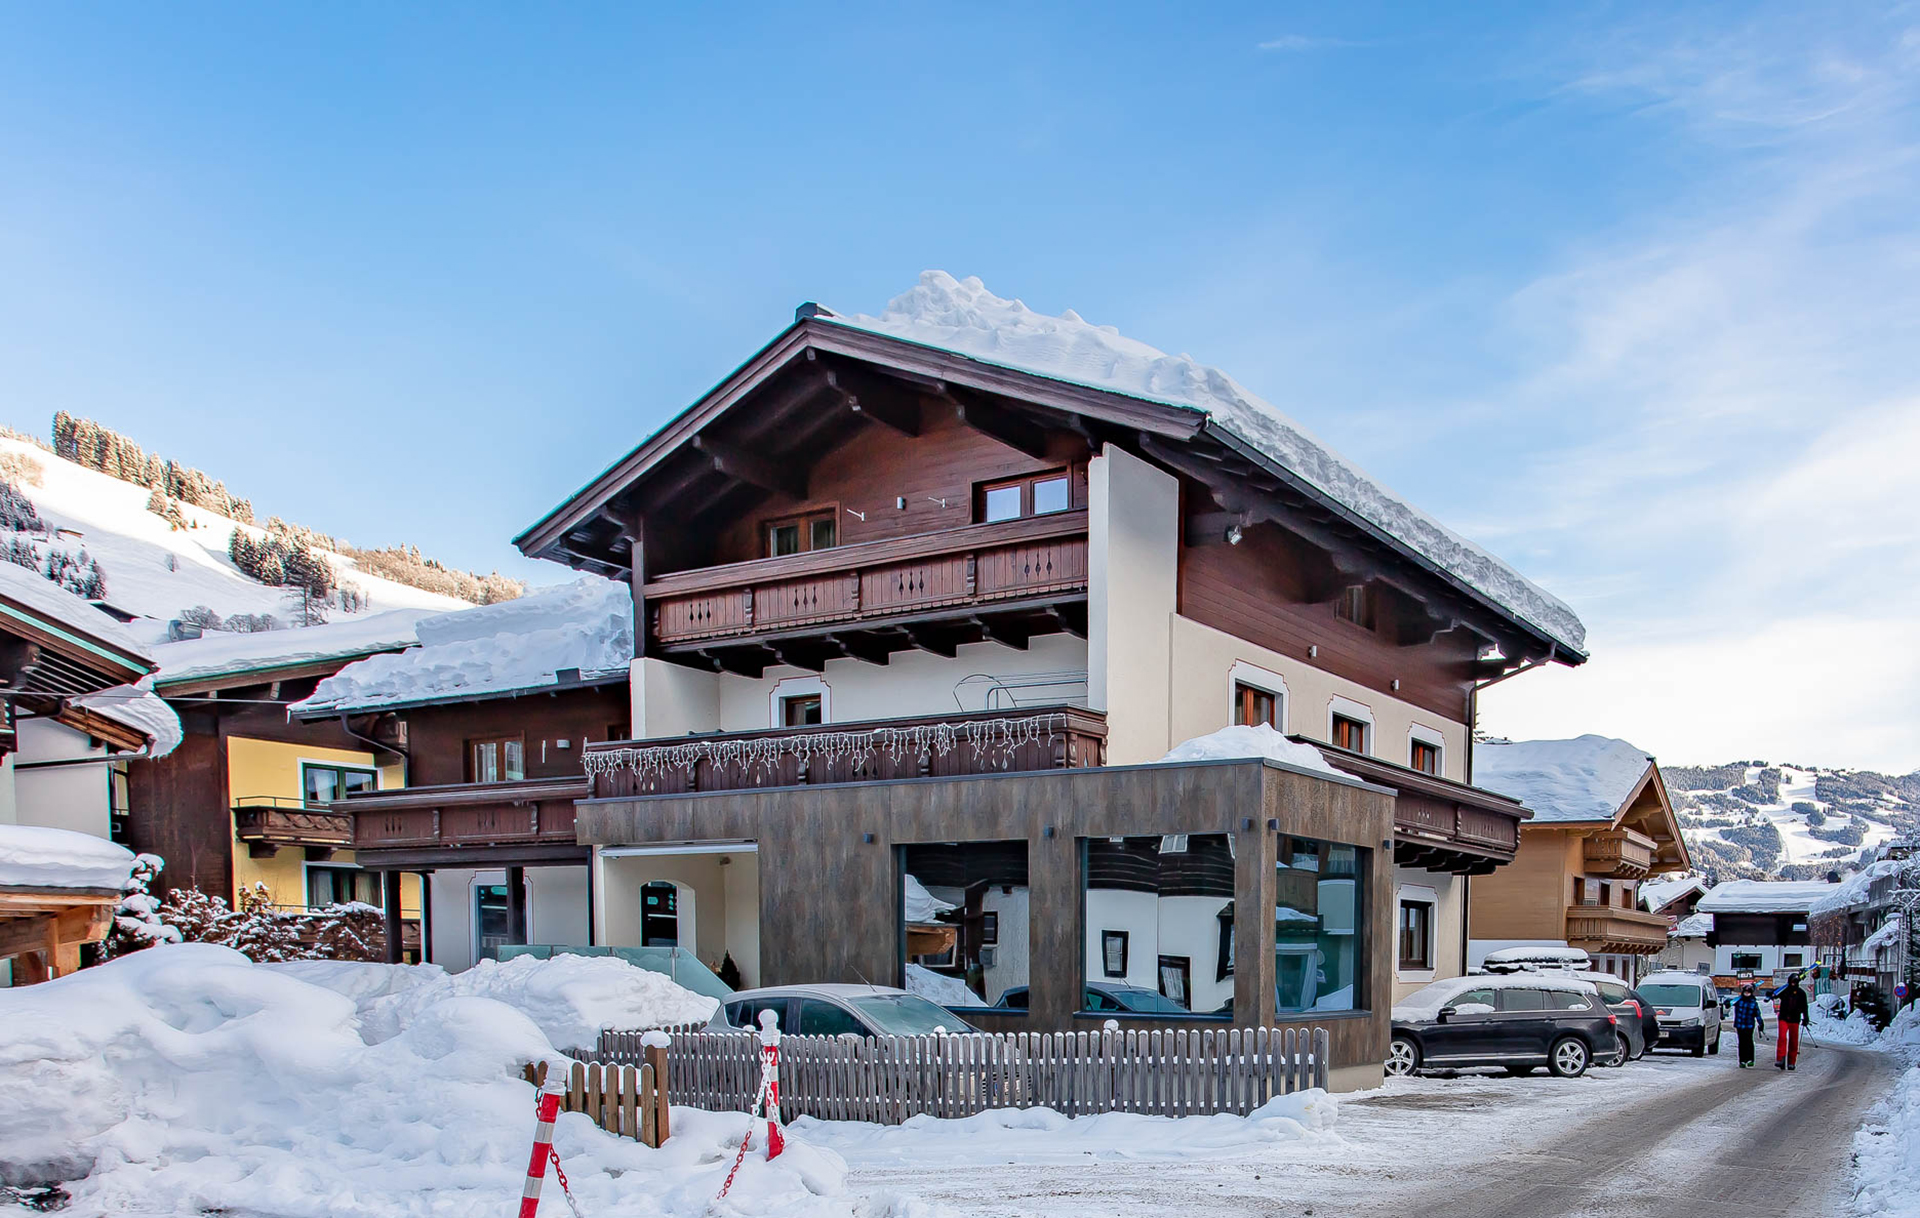 Pension Hinterglemm Winterurlaub 8800